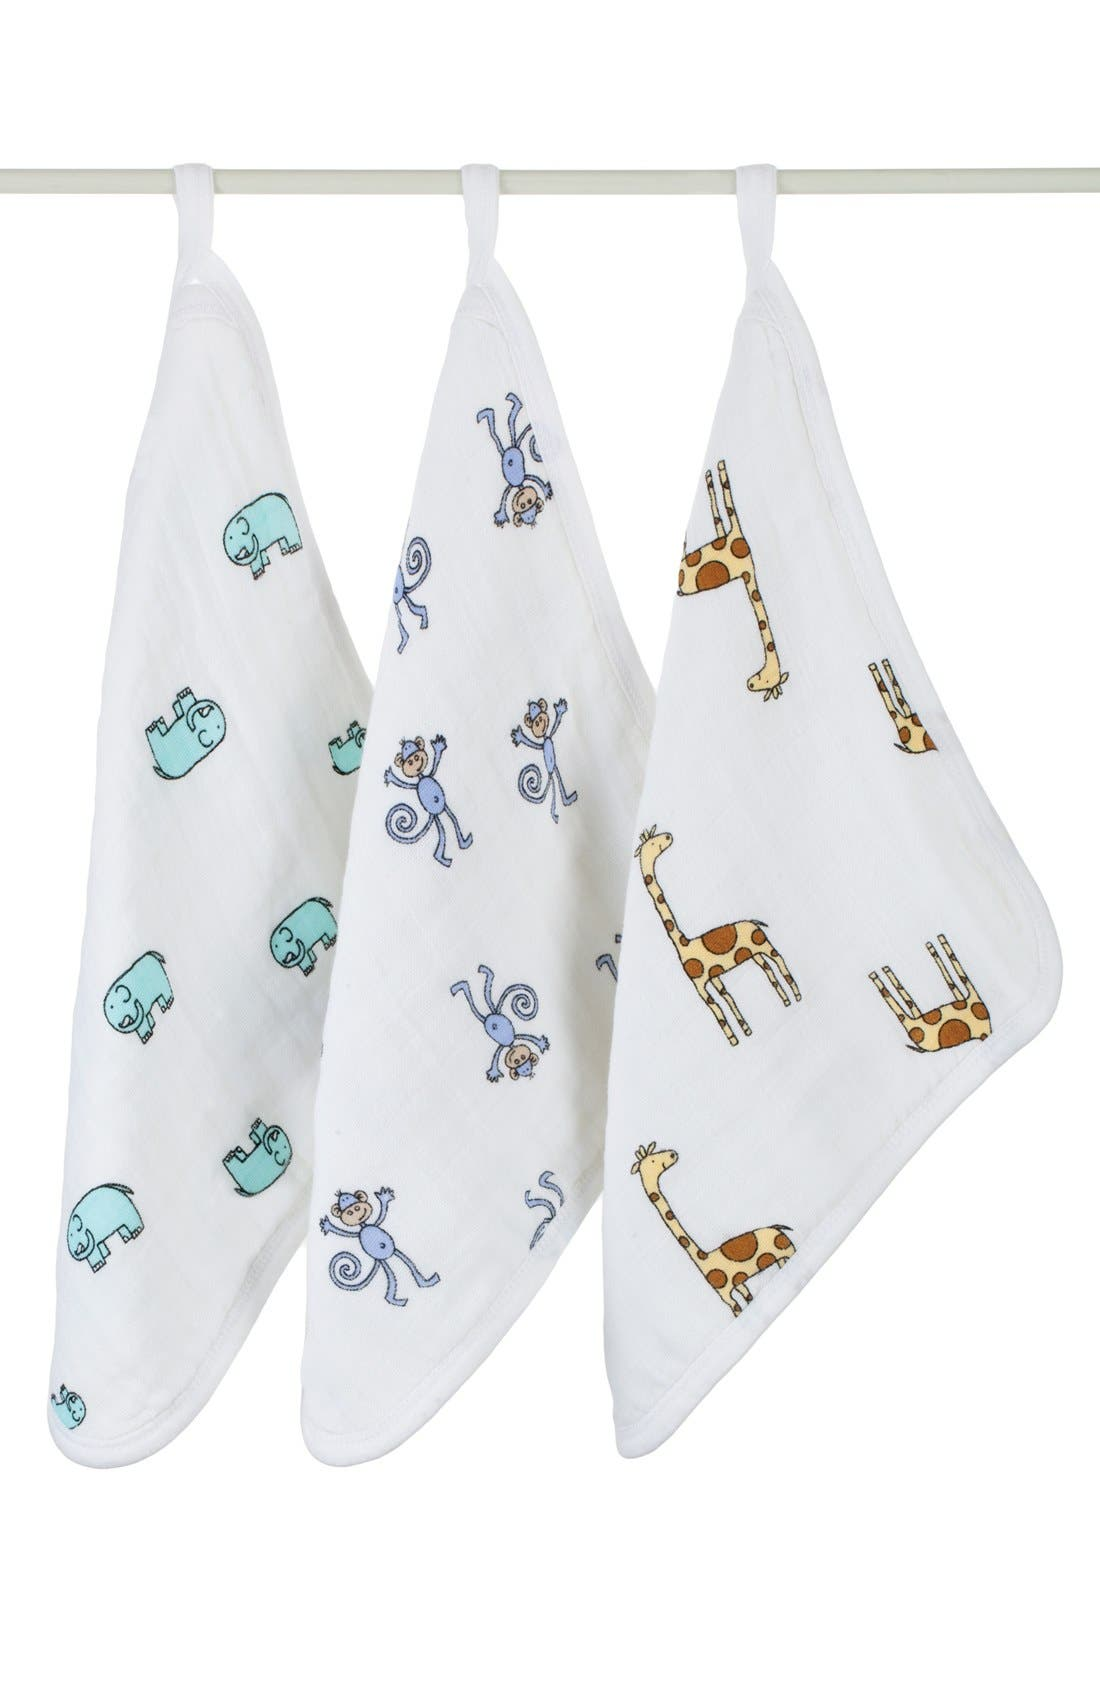 Alternate Image 1 Selected - aden + anais Classic Washcloth Set (3-Pack)